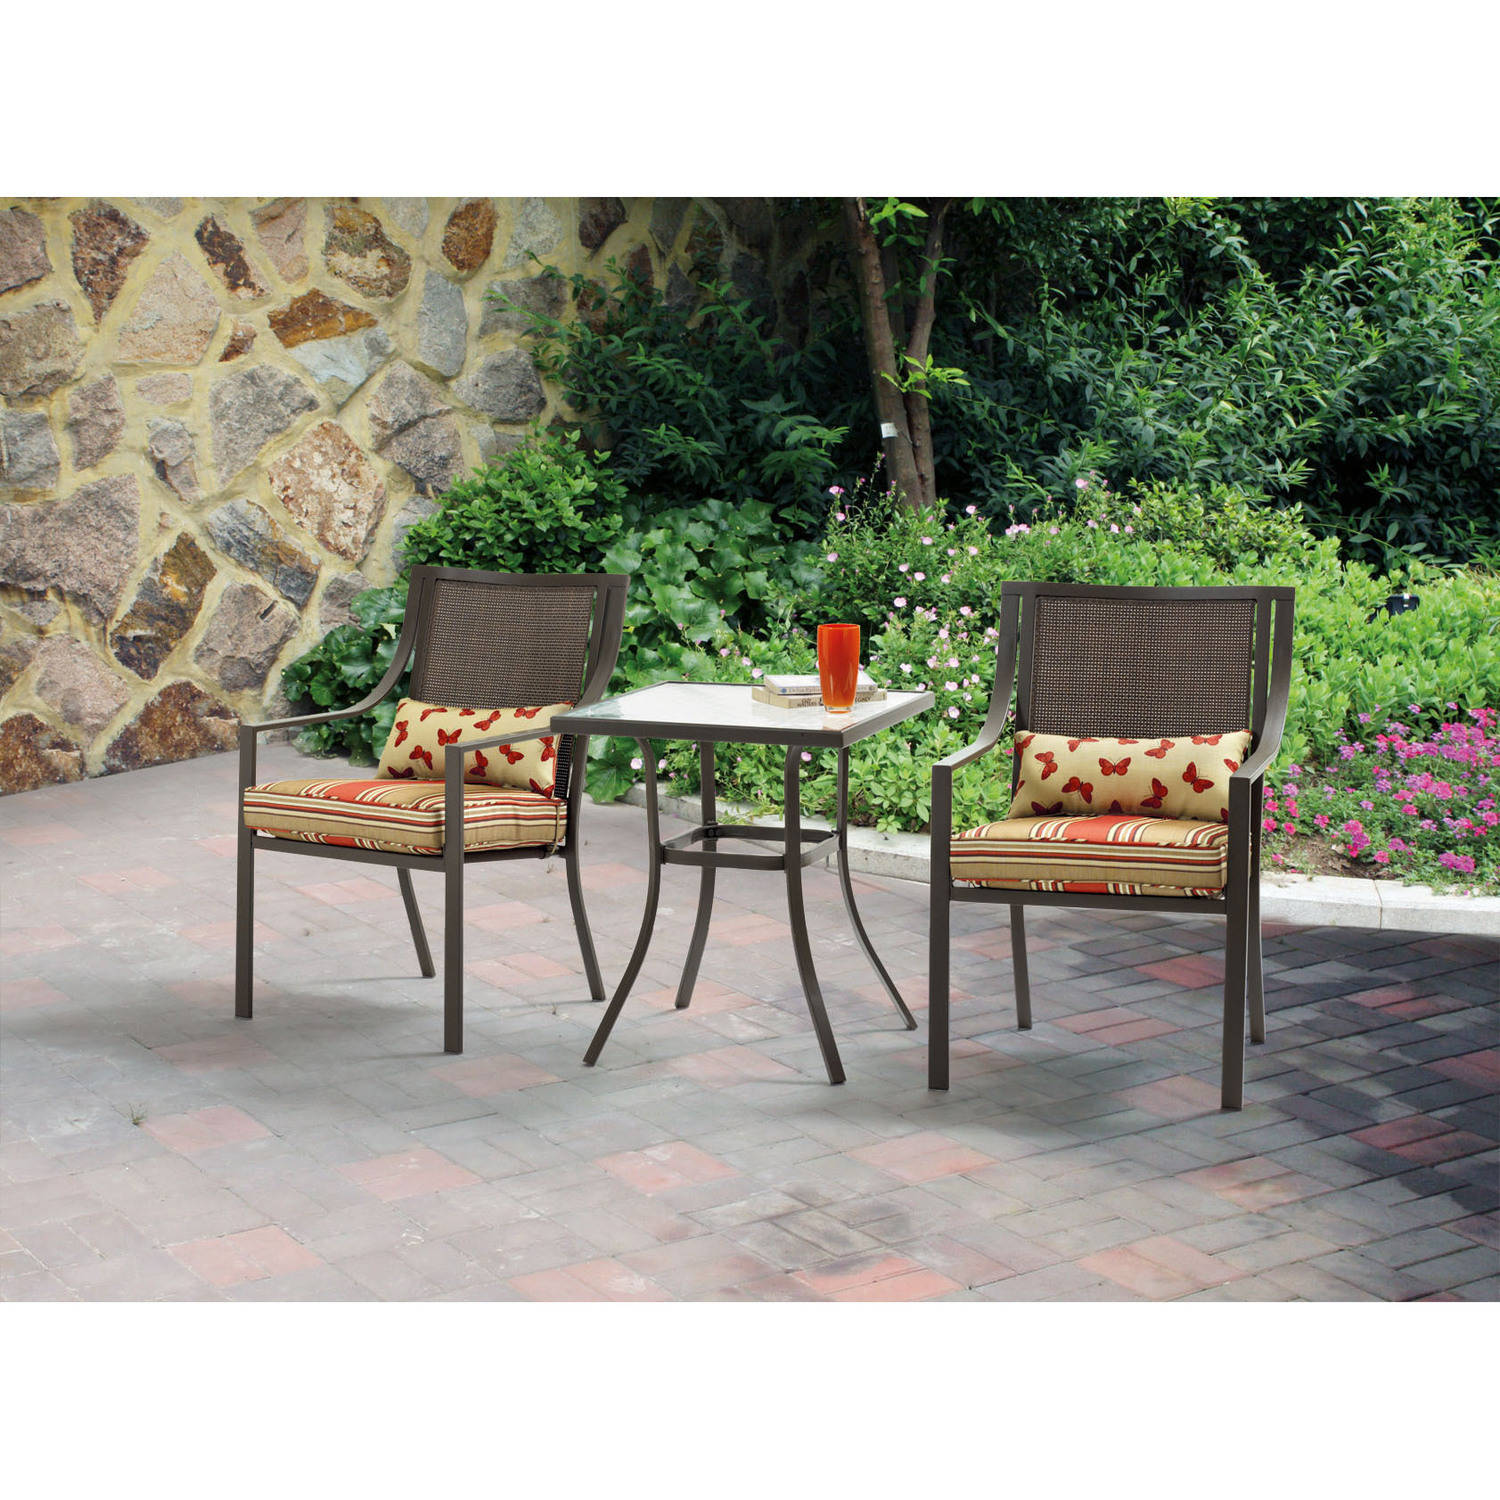 Mainstays Alexandra Square 3 Piece Outdoor Bistro Set, Seats 2